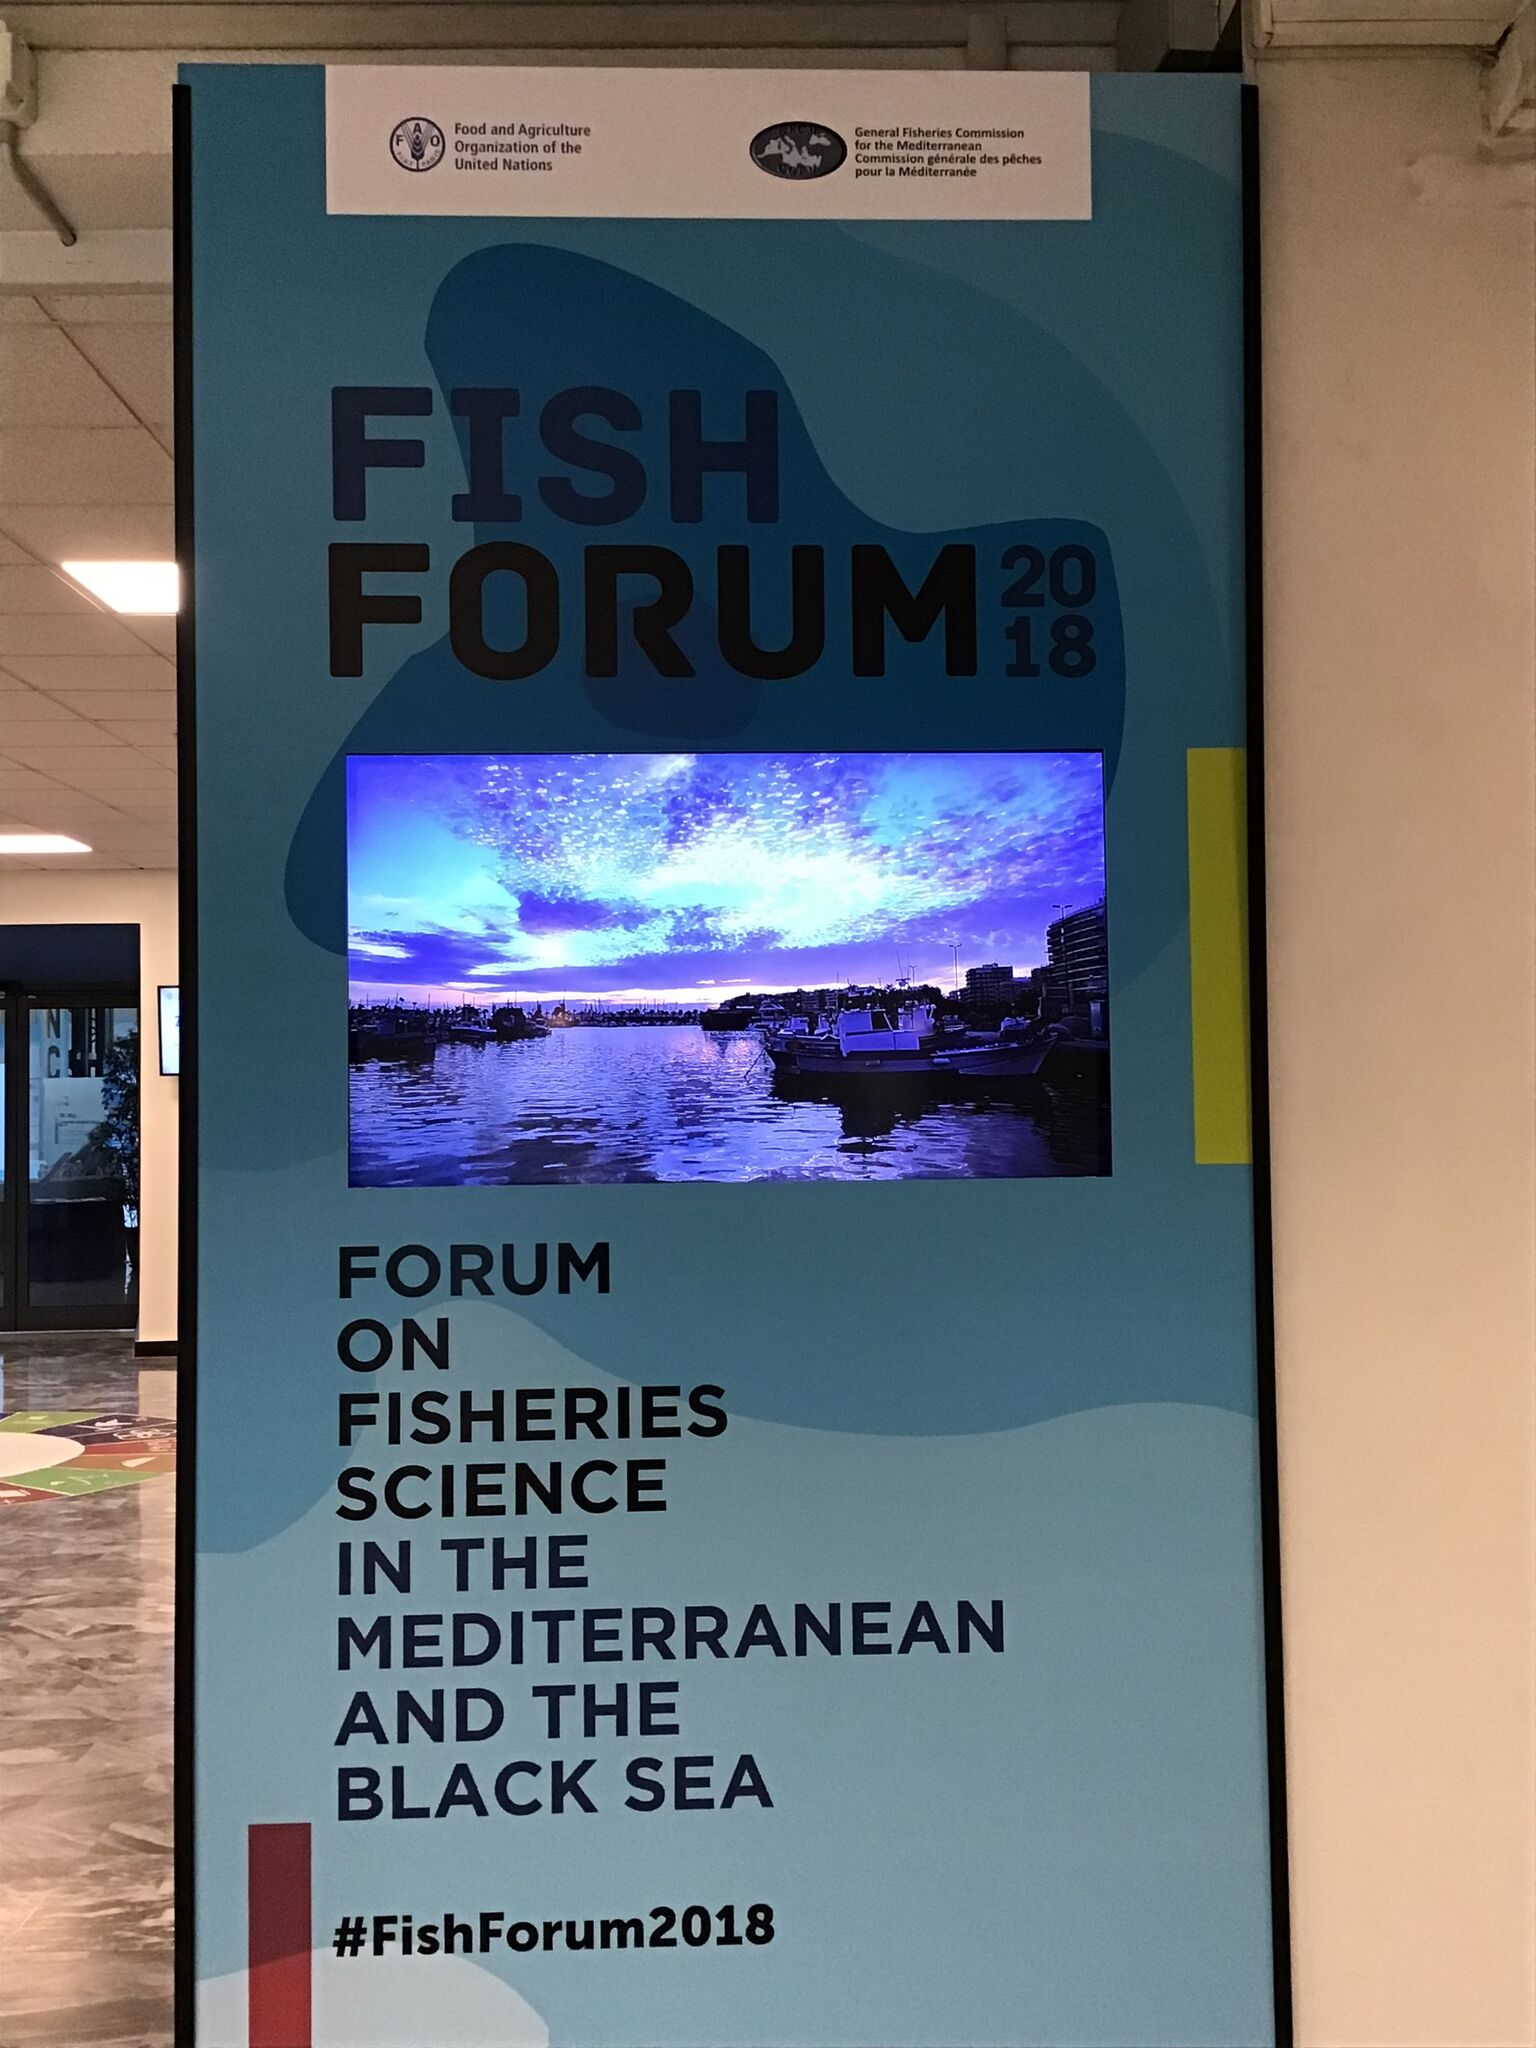 FishForum 2018, SponGES